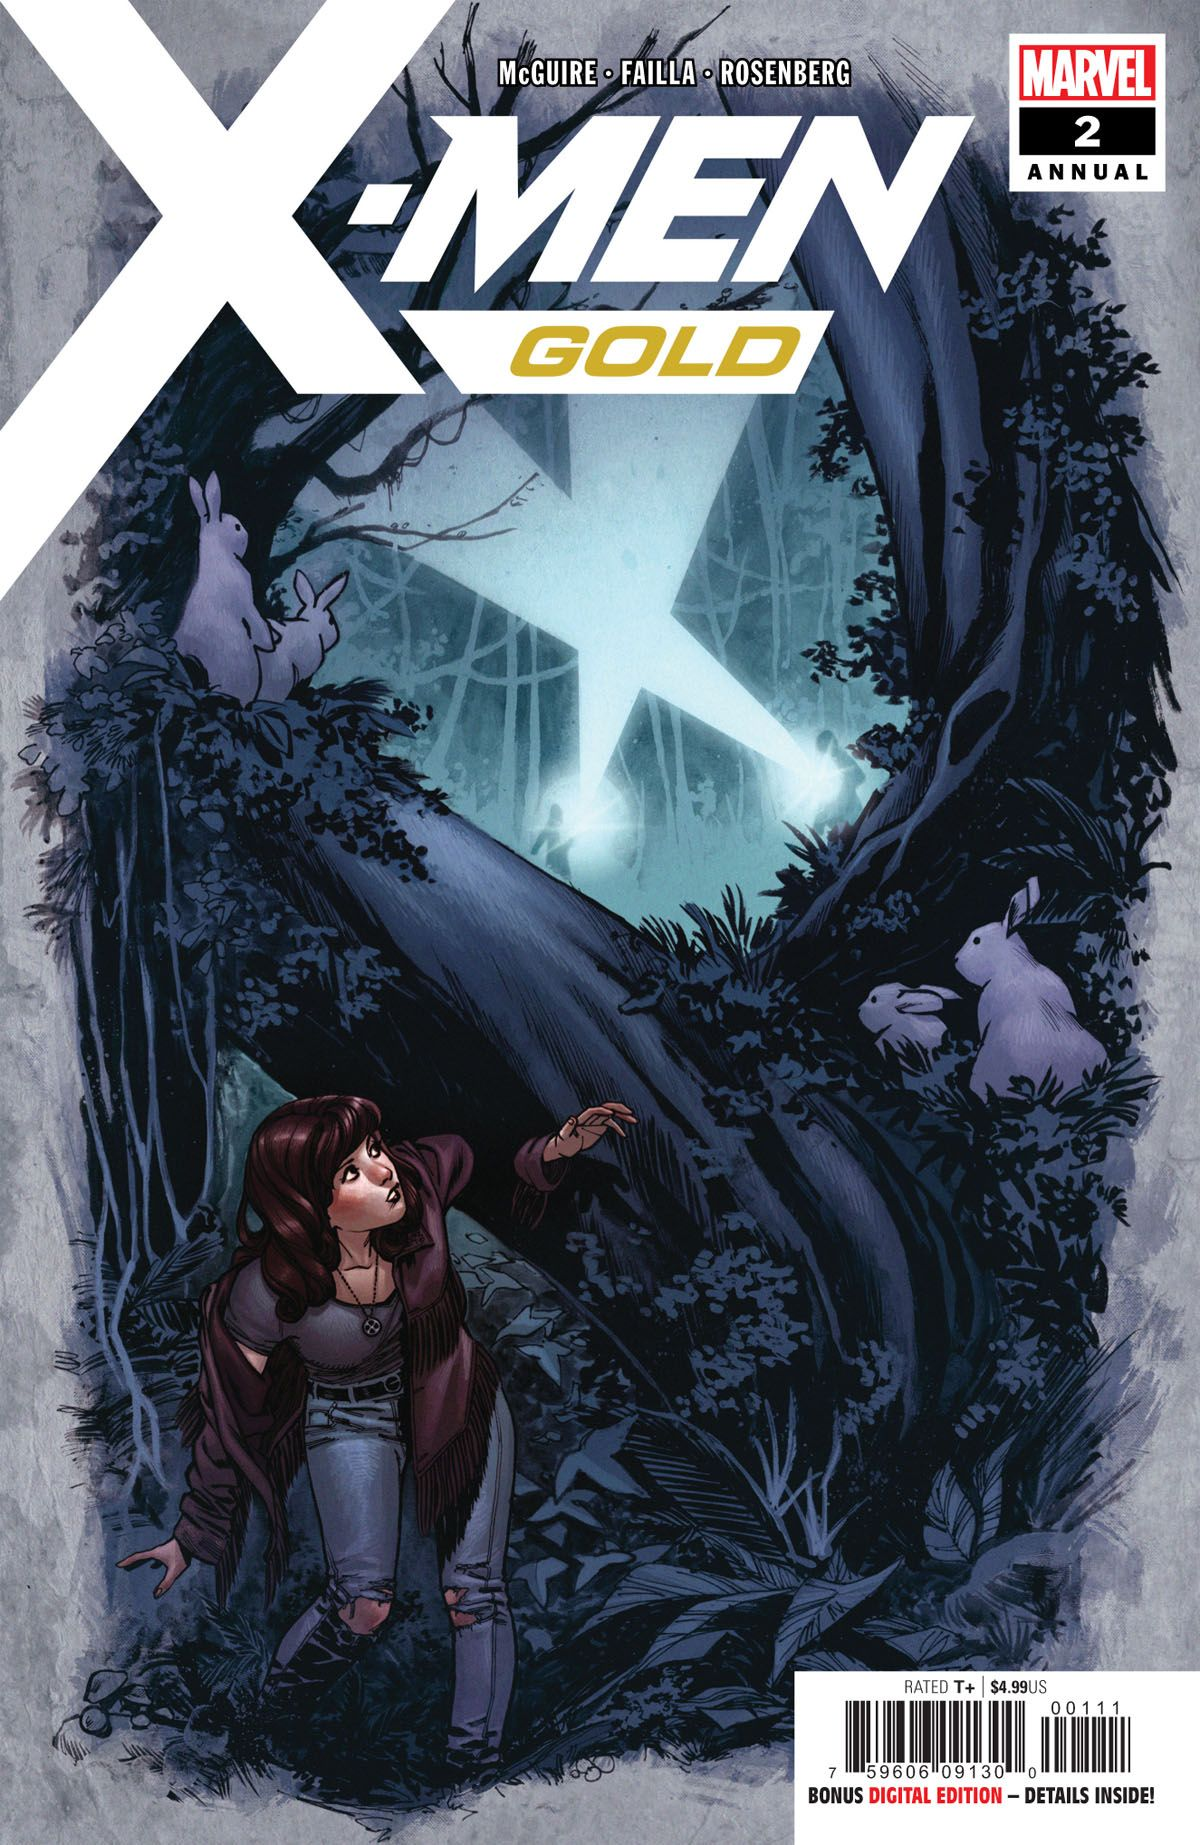 Exclusive Preview X Men Gold Annual 2 Looks At Kitty Pryde S Past X Men Comics Man Thing Marvel